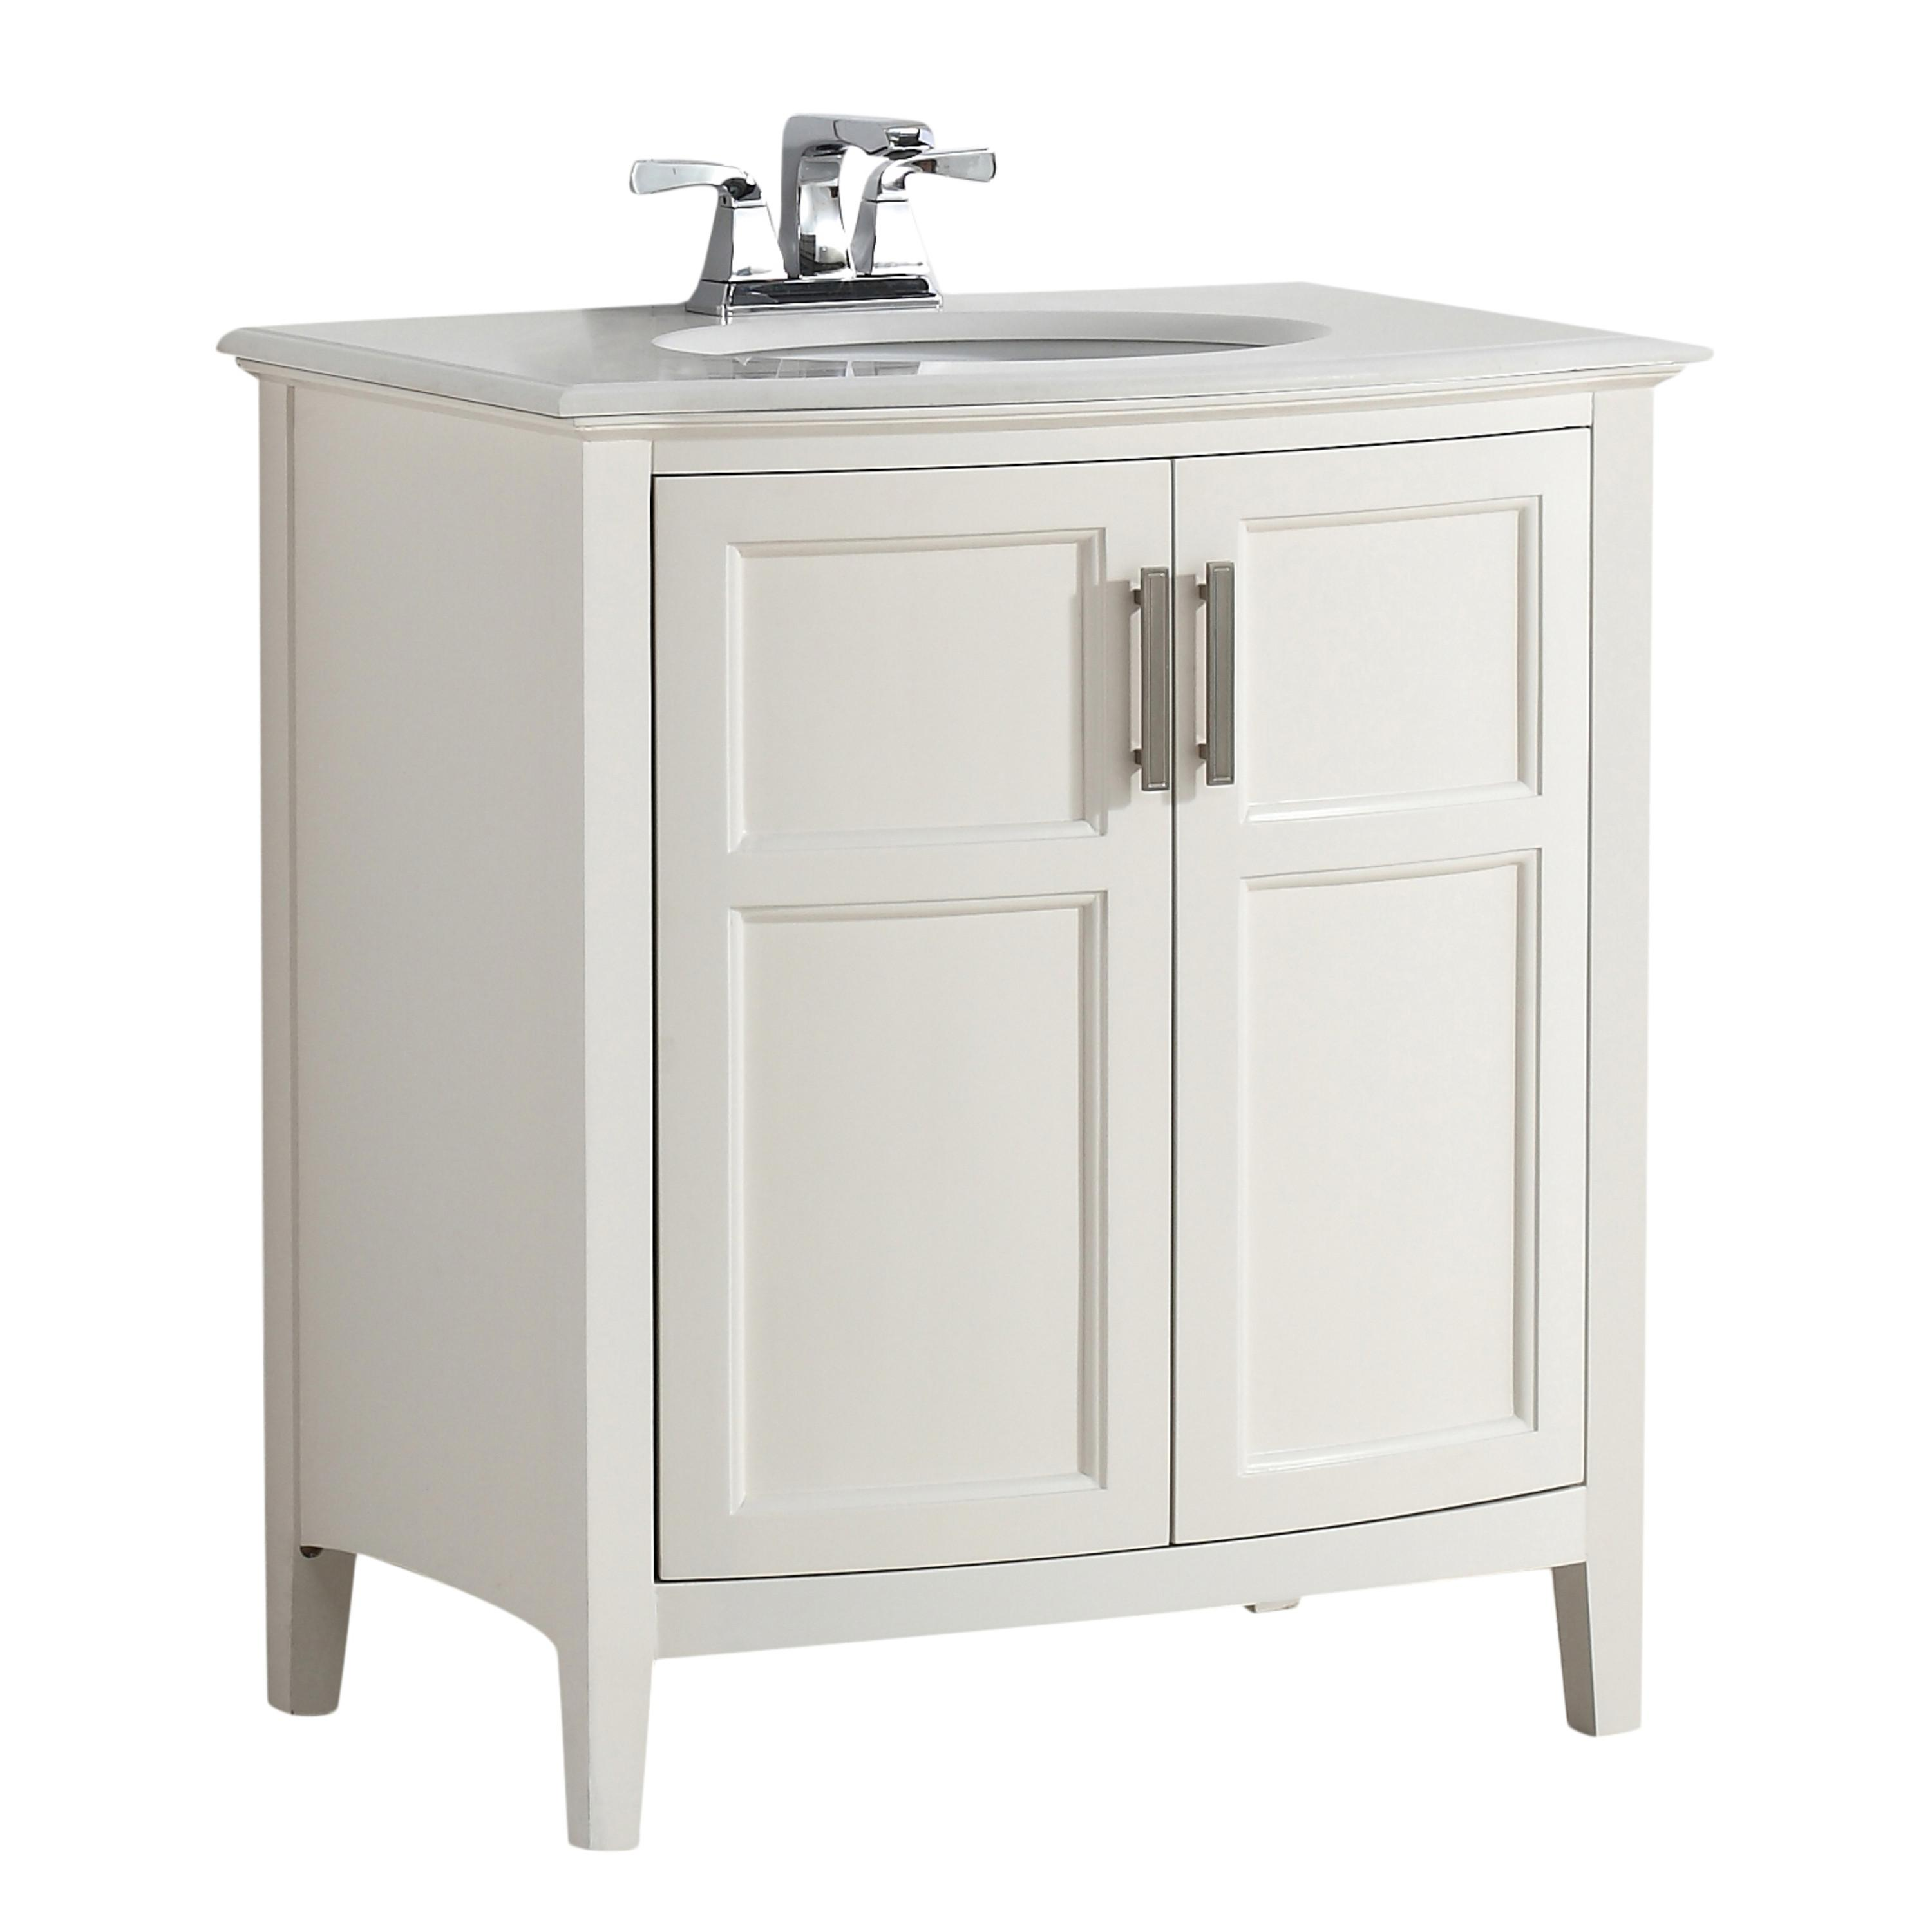 Vanity Front View : Simpli home winston quot bath vanity rounded front with